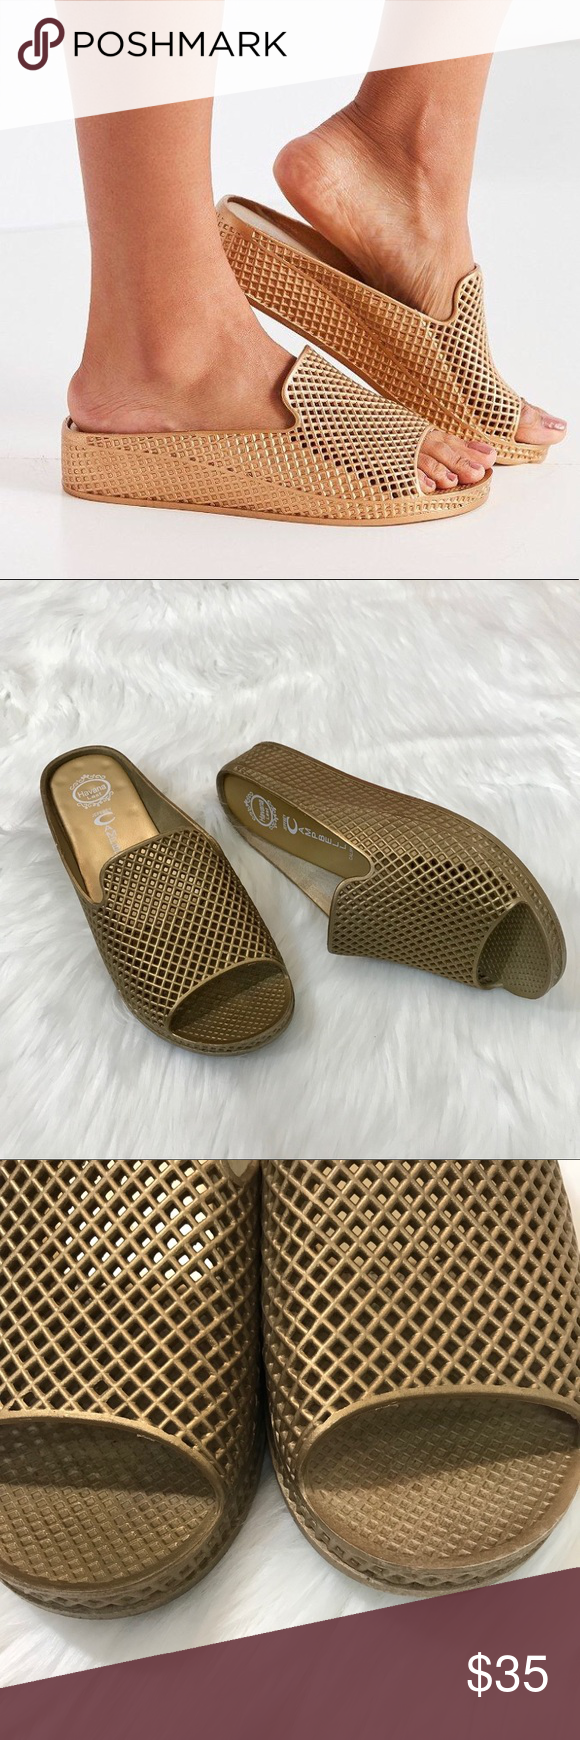 95bd2477a792 Jeffrey Campbell Fling 2 Sandals in Gold Adorable slide on sandals from Jeffrey  Campbell Size 9. Good pre-owned condition